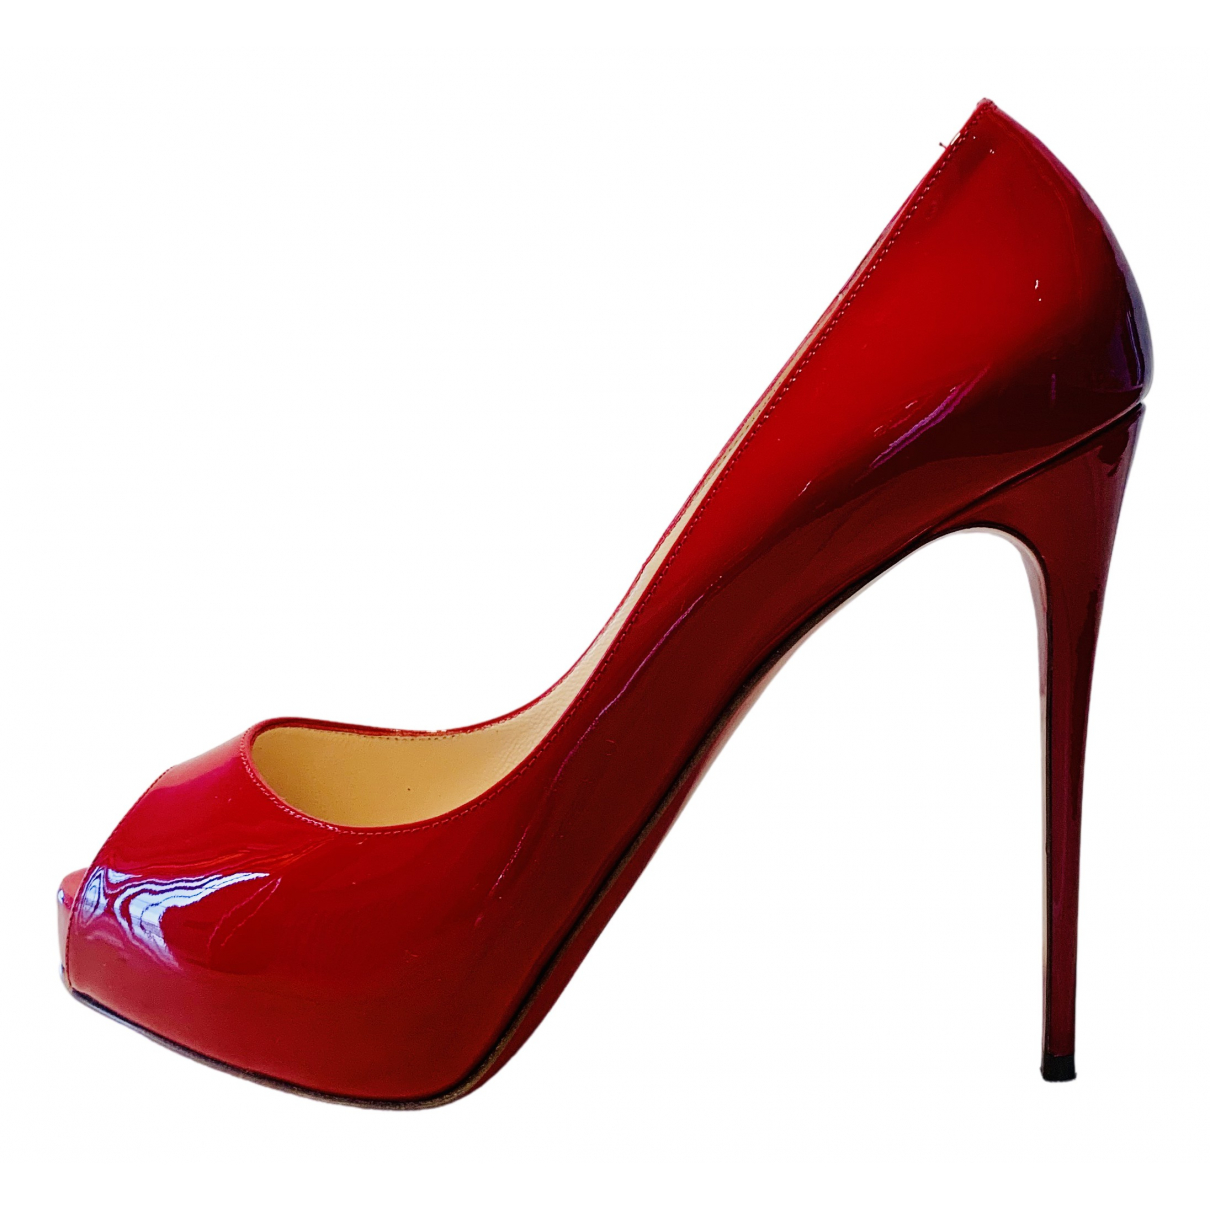 Christian Louboutin Very Privé Red Patent leather Heels for Women 40.5 EU